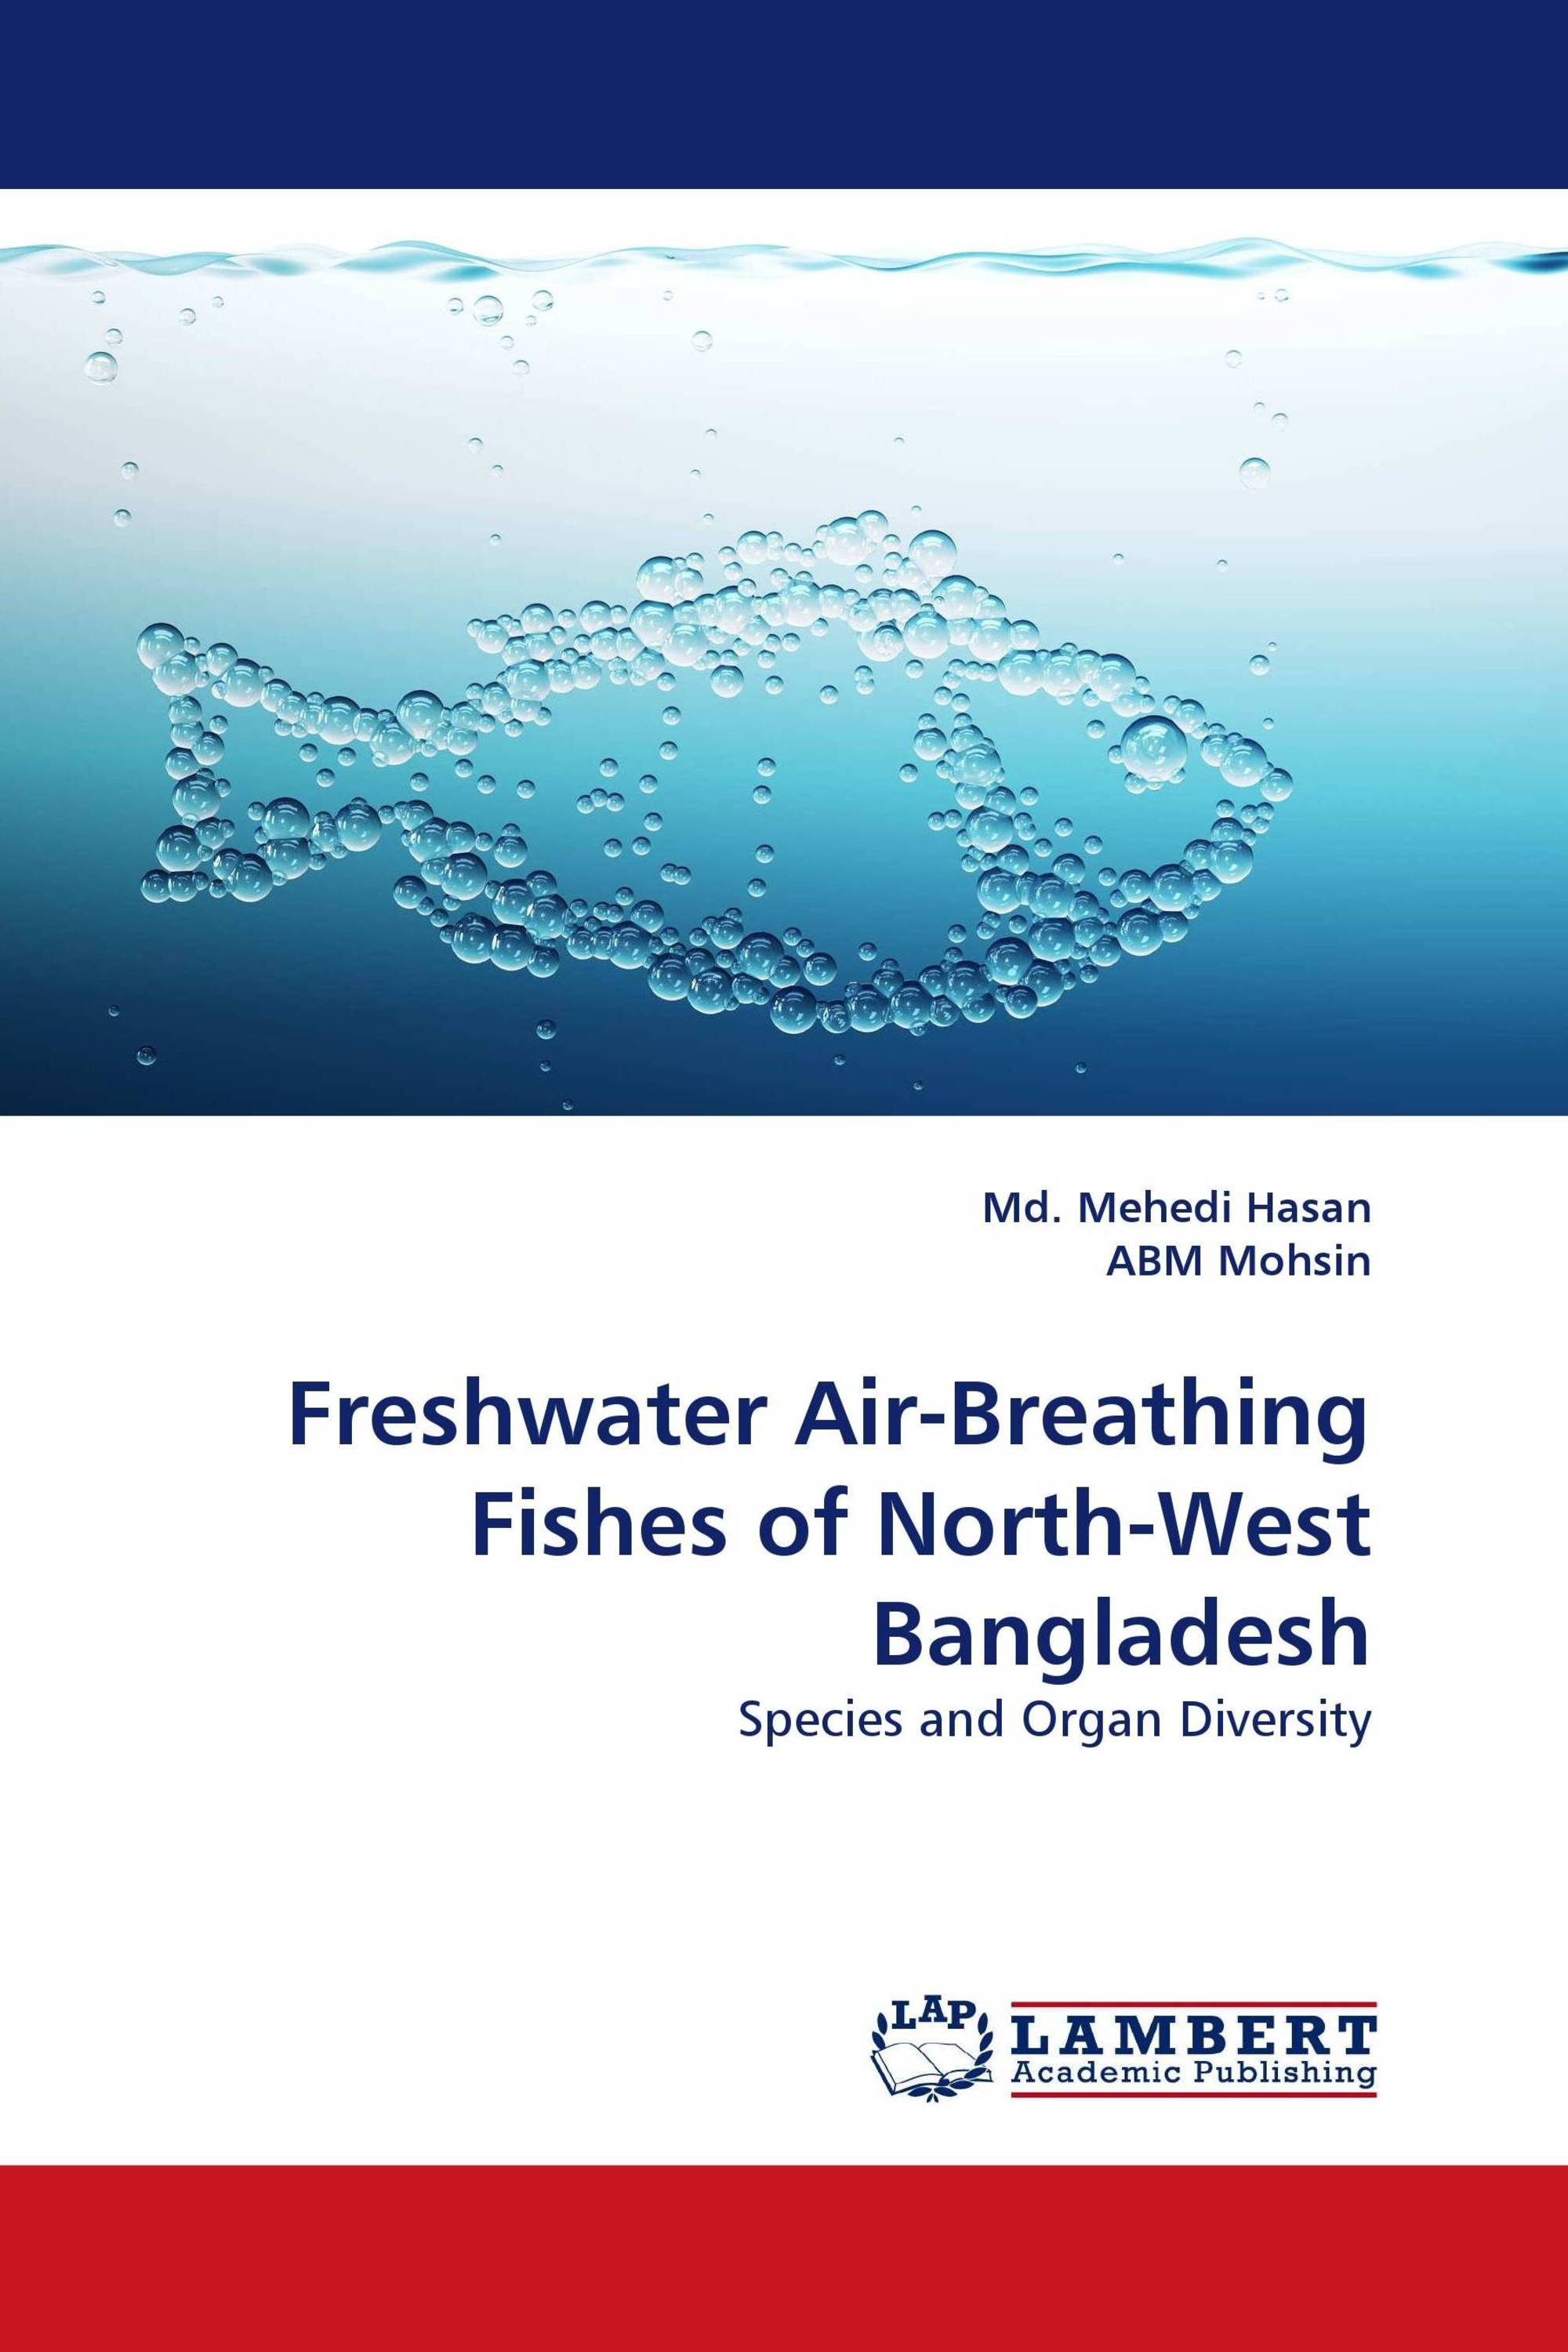 Freshwater Air-Breathing Fishes of North-West Bangladesh